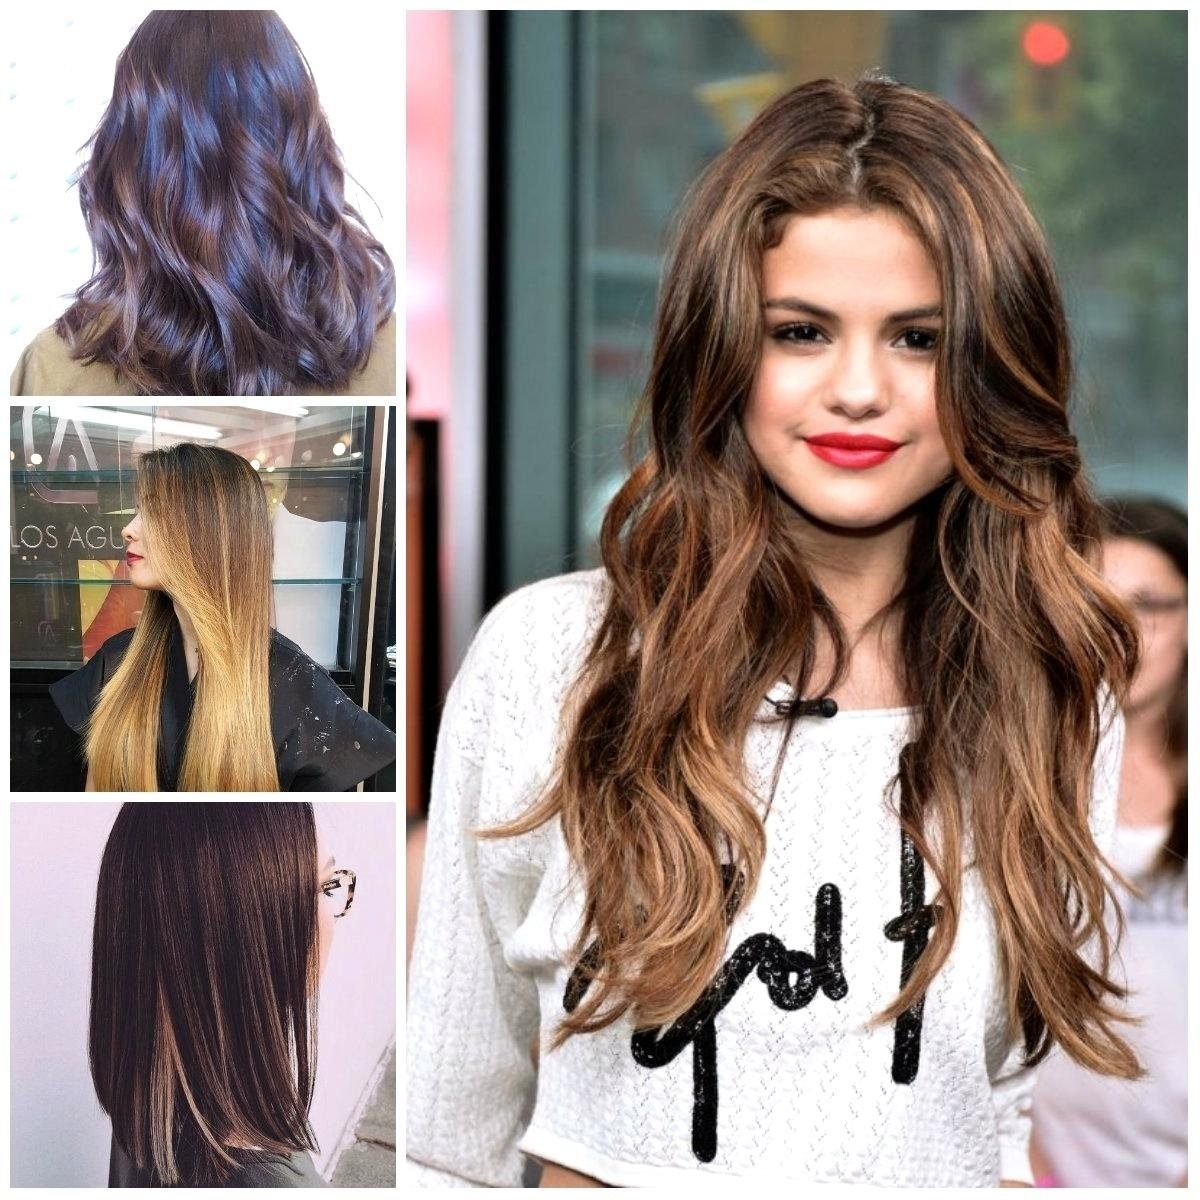 10 Stunning Light Brown Hair Color Ideas improbable color ideas dark brown light and dark brown hair color 2 2020